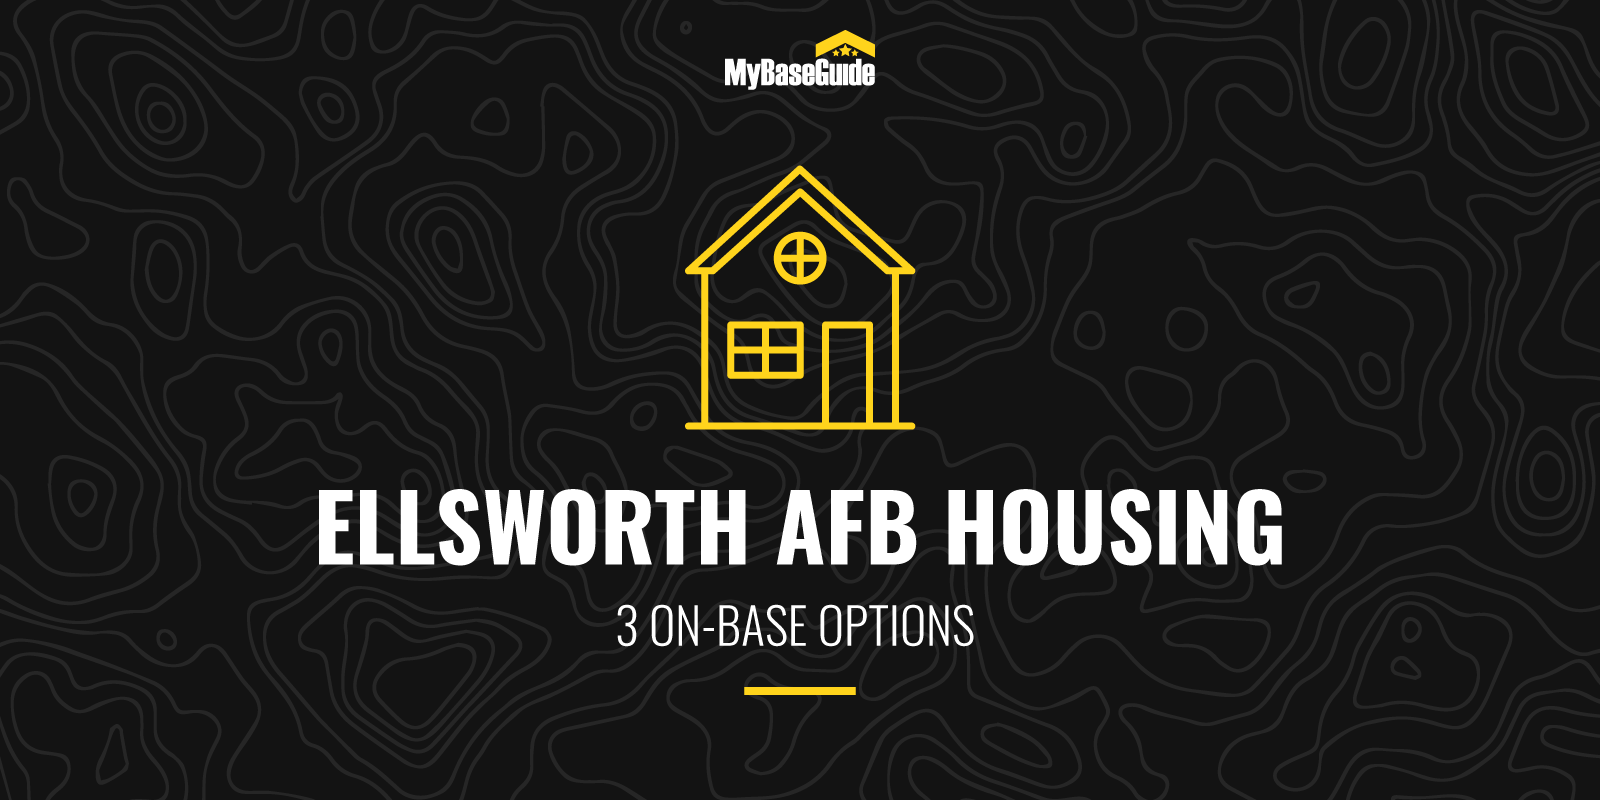 Ellsworth AFB Housing: 3 On-Base Options